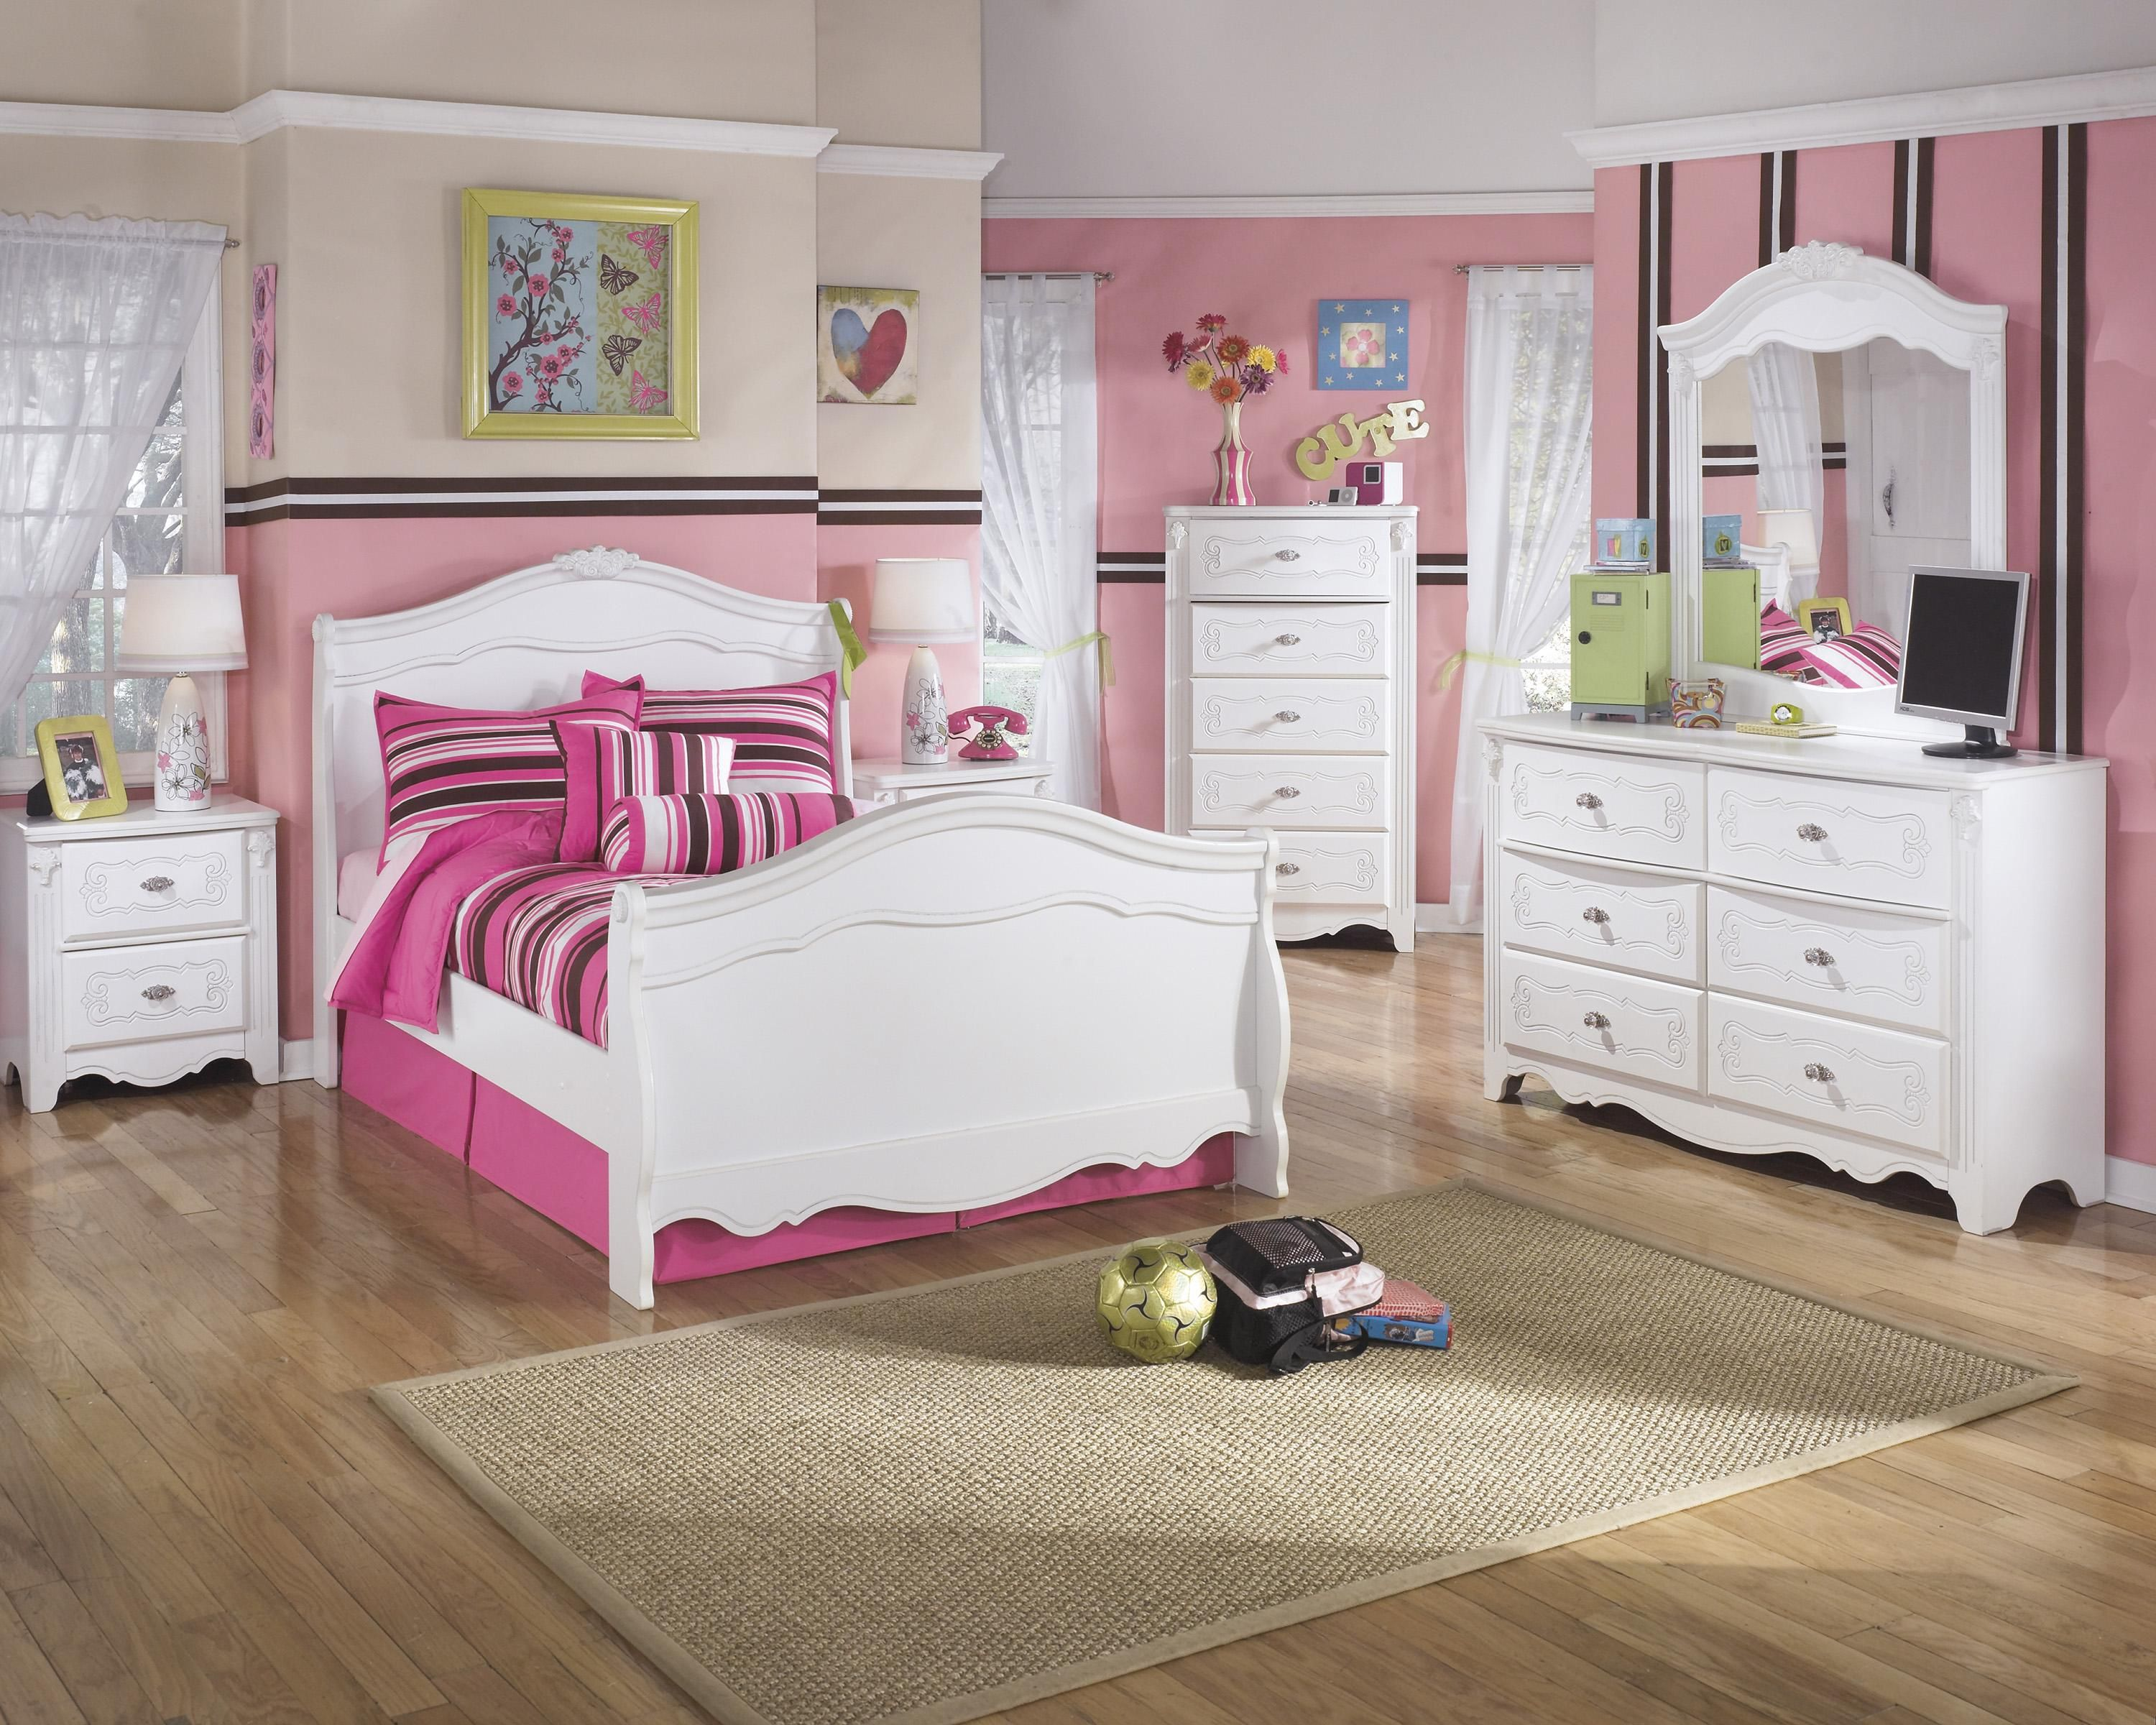 Ashley white bedroom furniture - Exquisite Full Bedroom Group By Signature Design By Ashley